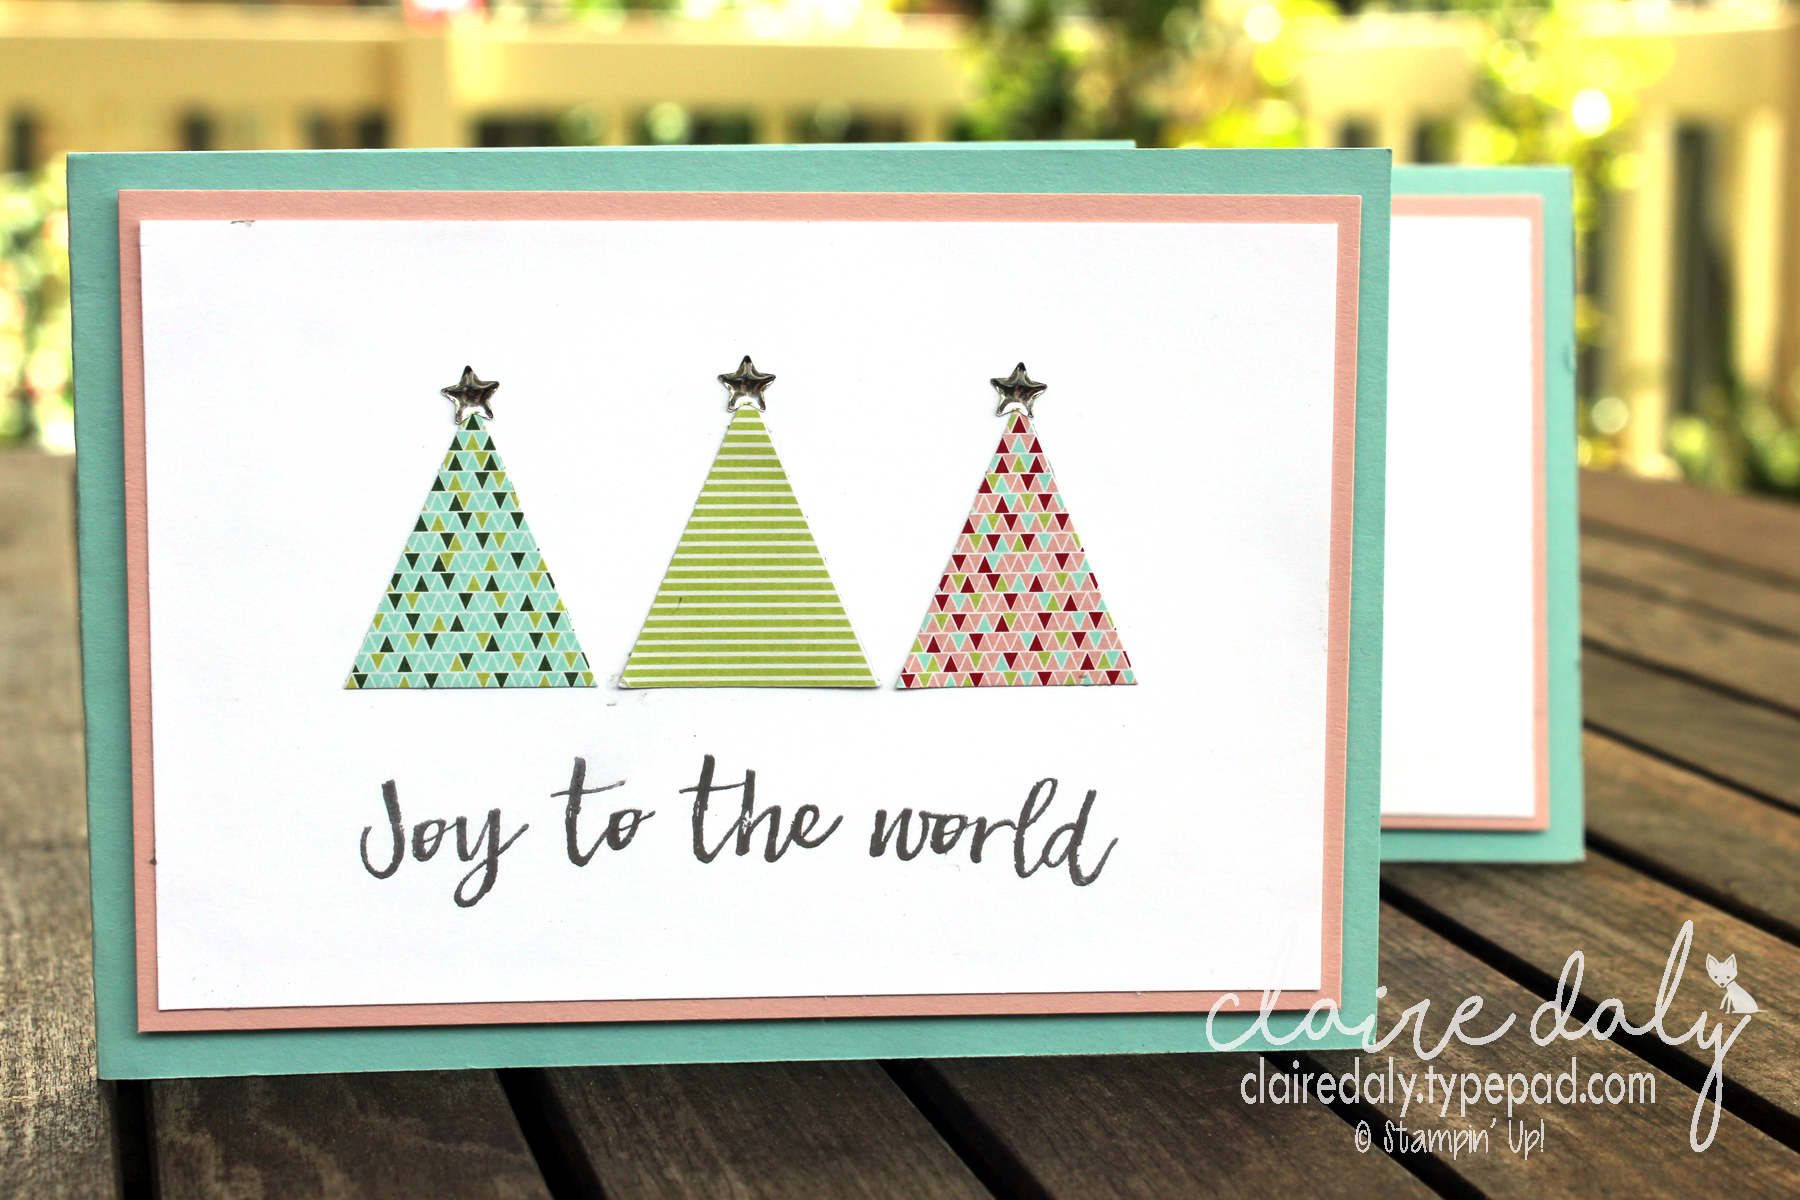 Stampin Up Australia Claire Daly Independent Demonstrator